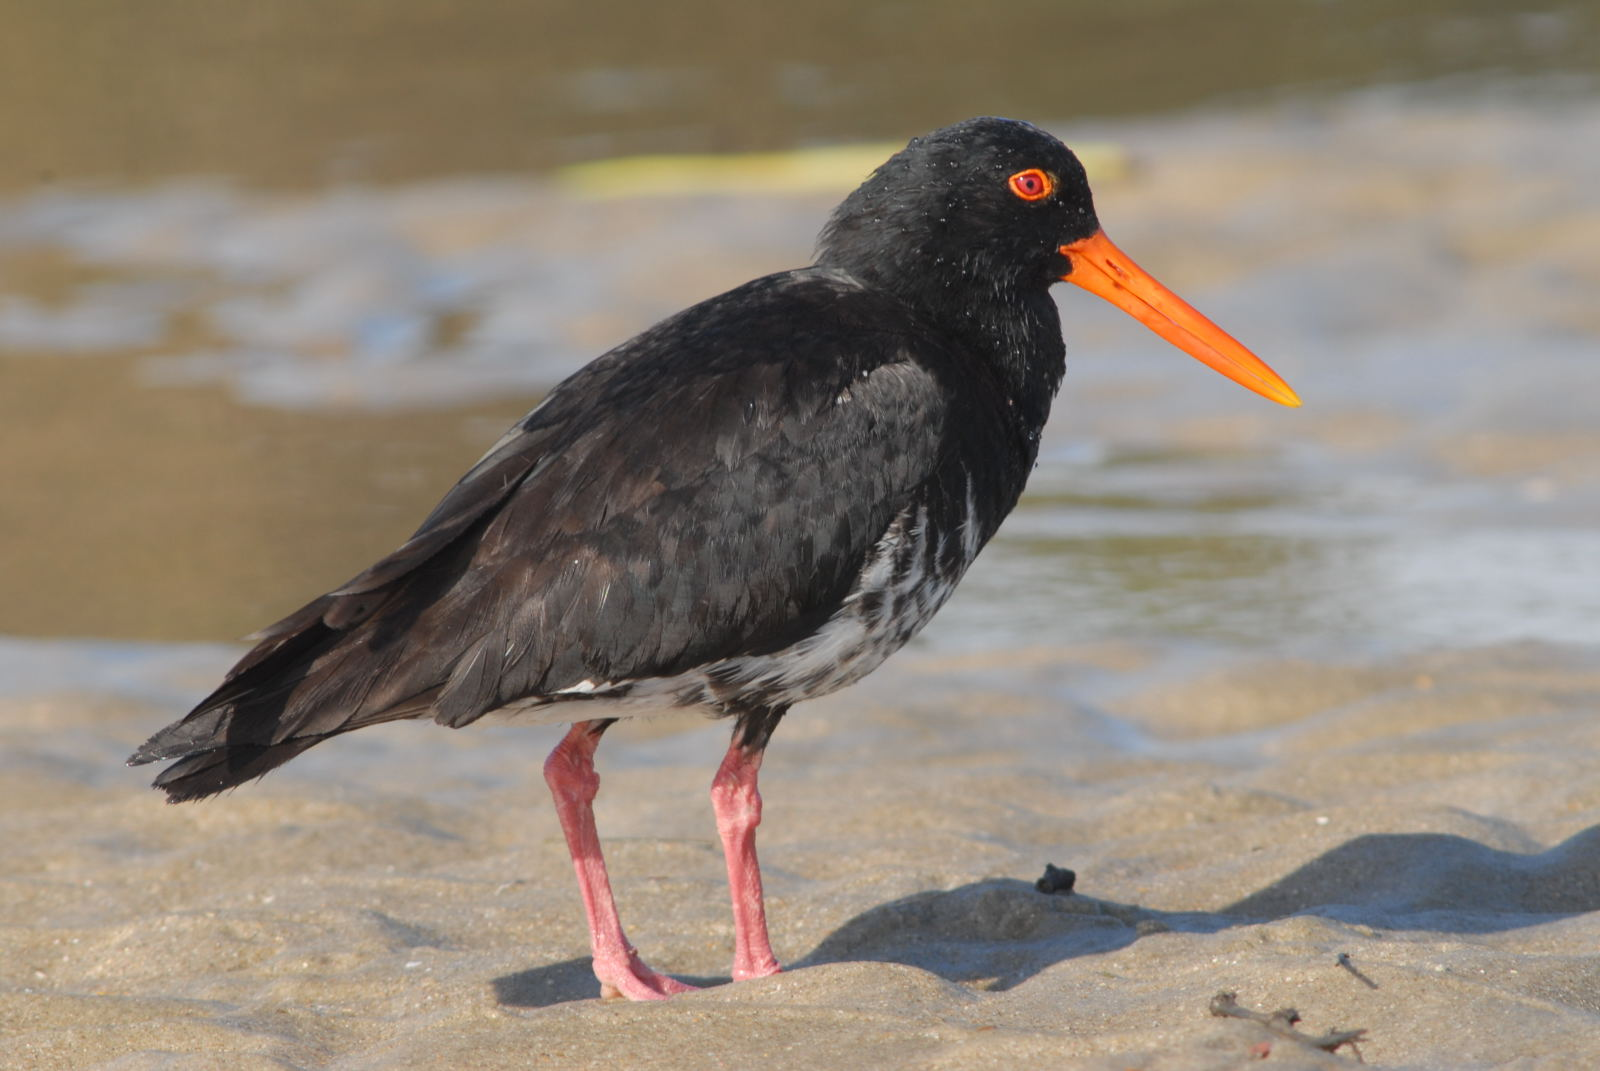 Variable oystercatcher. Intermediate morph adult. Northland, January 2008. Image © Peter Reese by Peter Reese